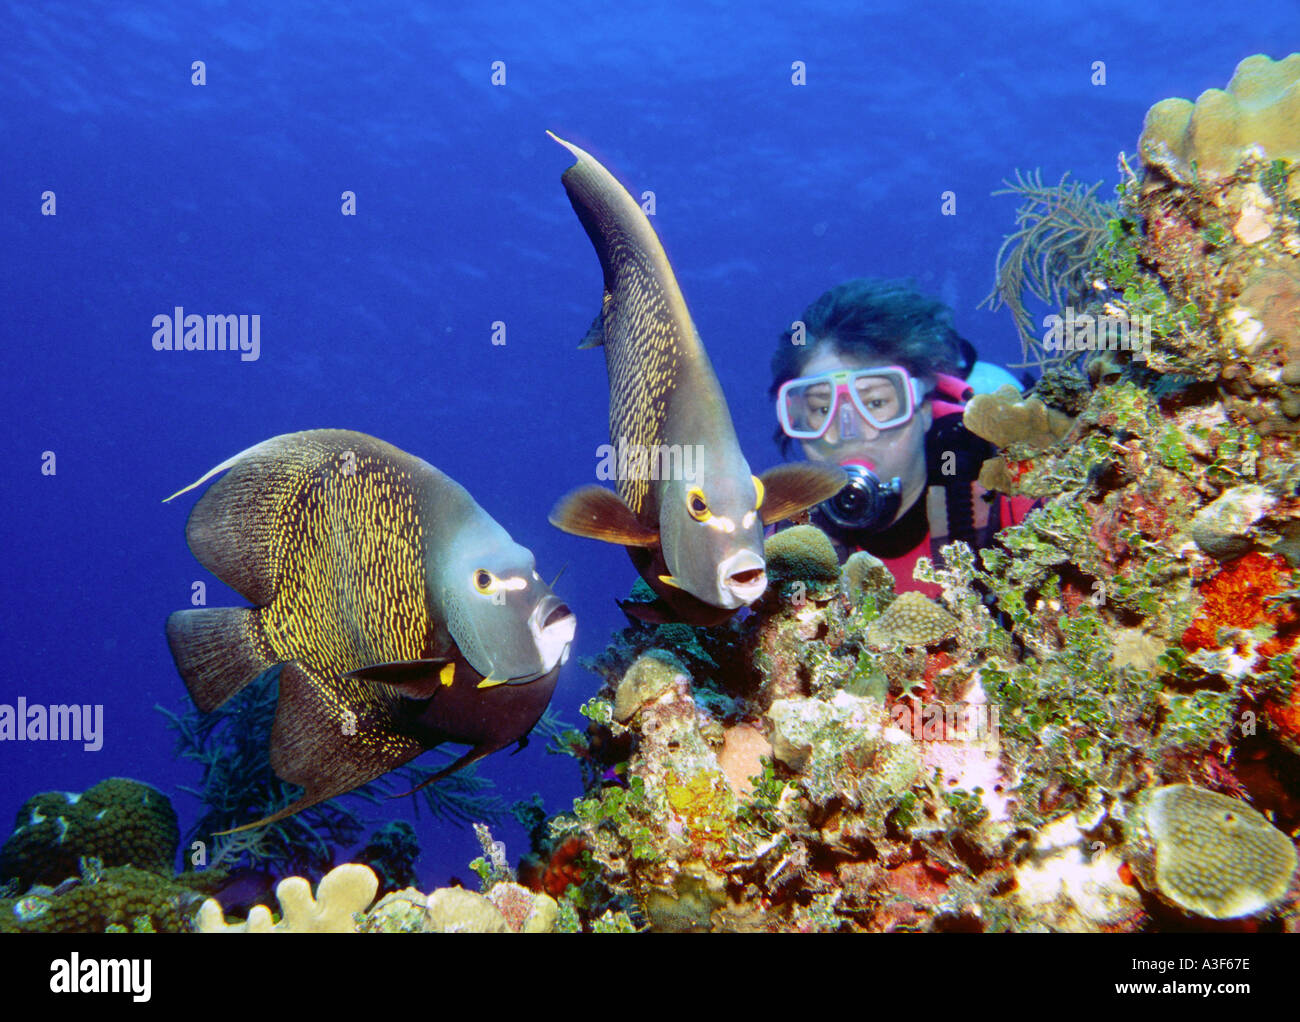 underwater caribbean reeflife, Diver and 2 french angel fishesStock Photo